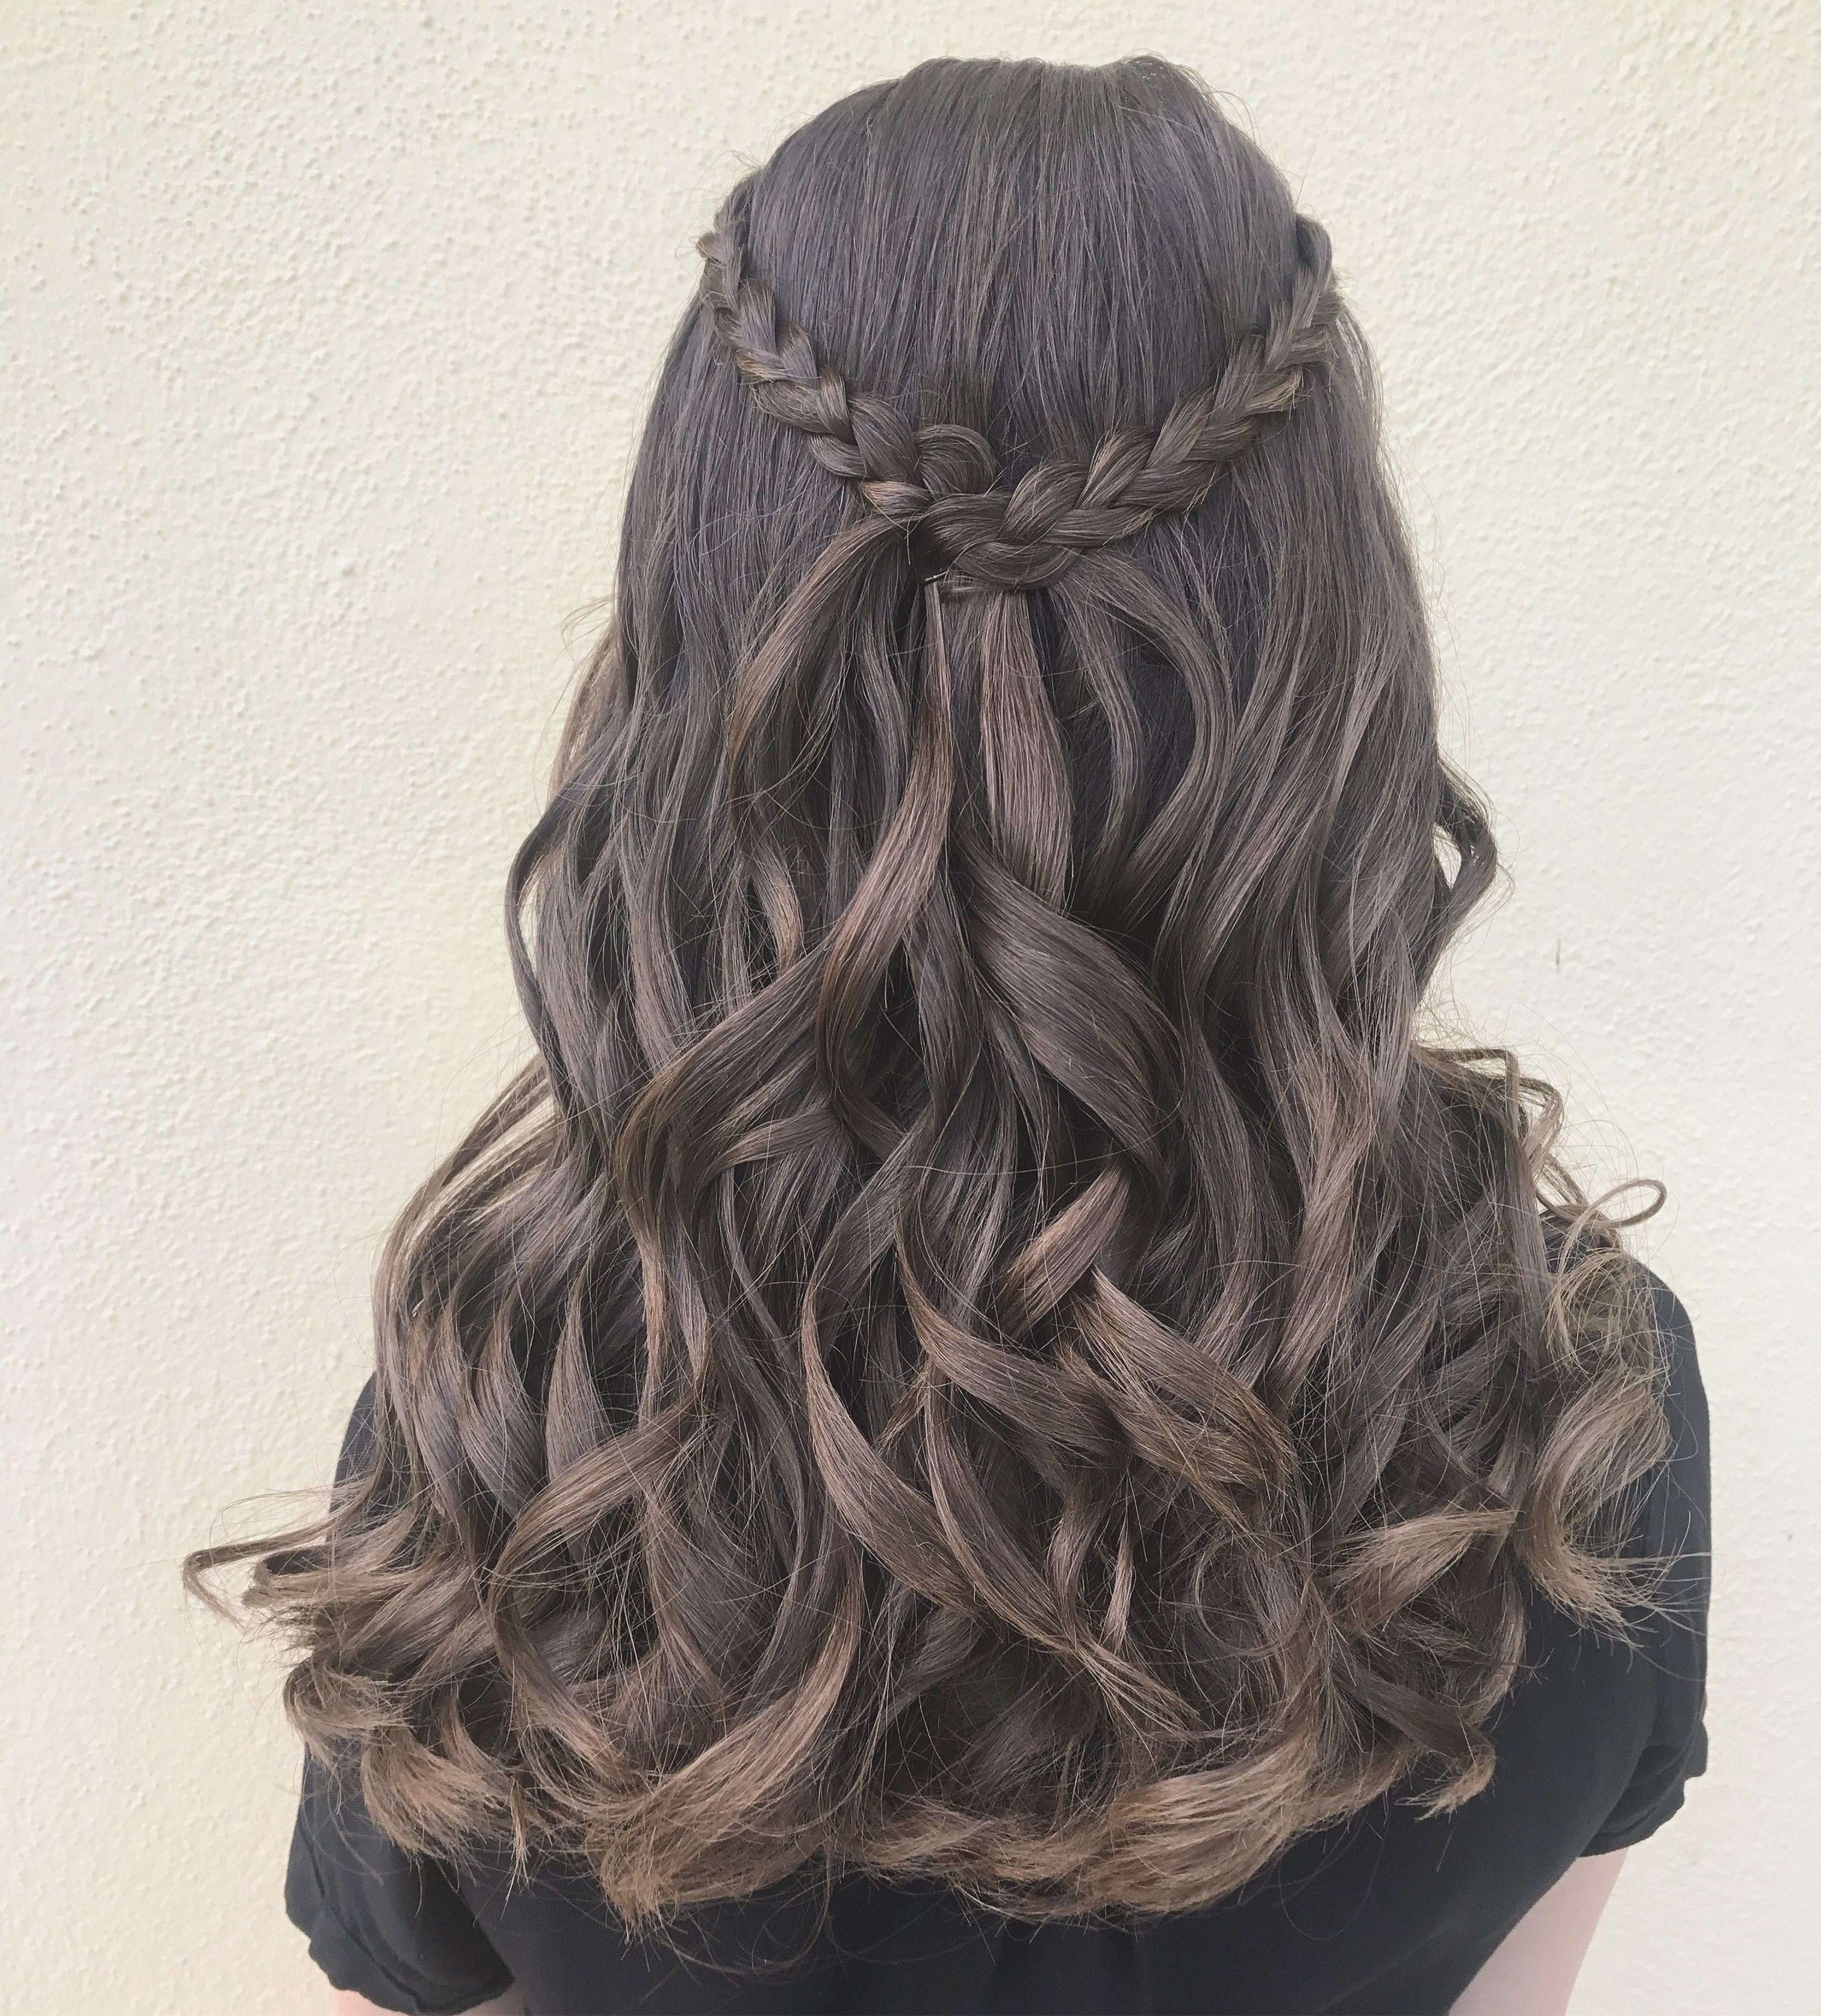 Well Liked Cascading Waves Prom Hairstyles For Long Hair Throughout Braided Bohemian Hairstyle Updo Long Hair Prom Hair Beach Waves (View 7 of 20)